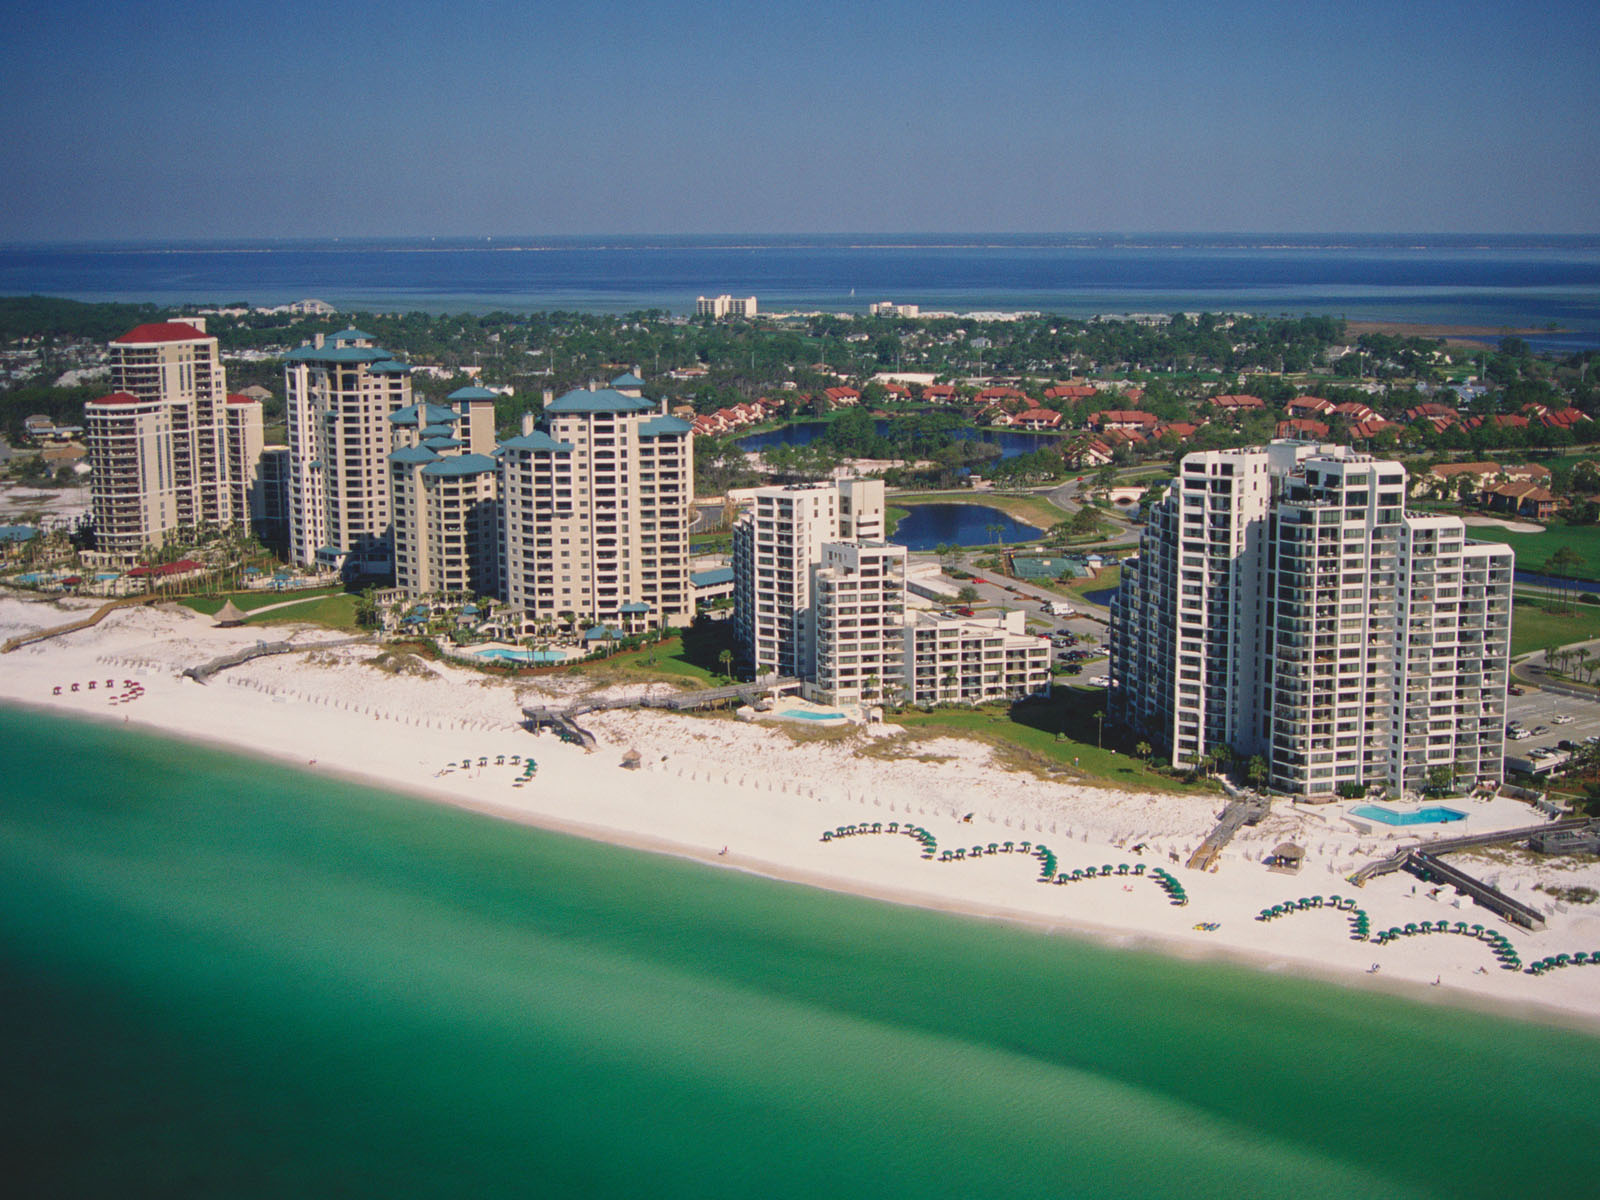 Special Rates for Military This Labor Day Weekend at Sandestin Golf And Beach Resort